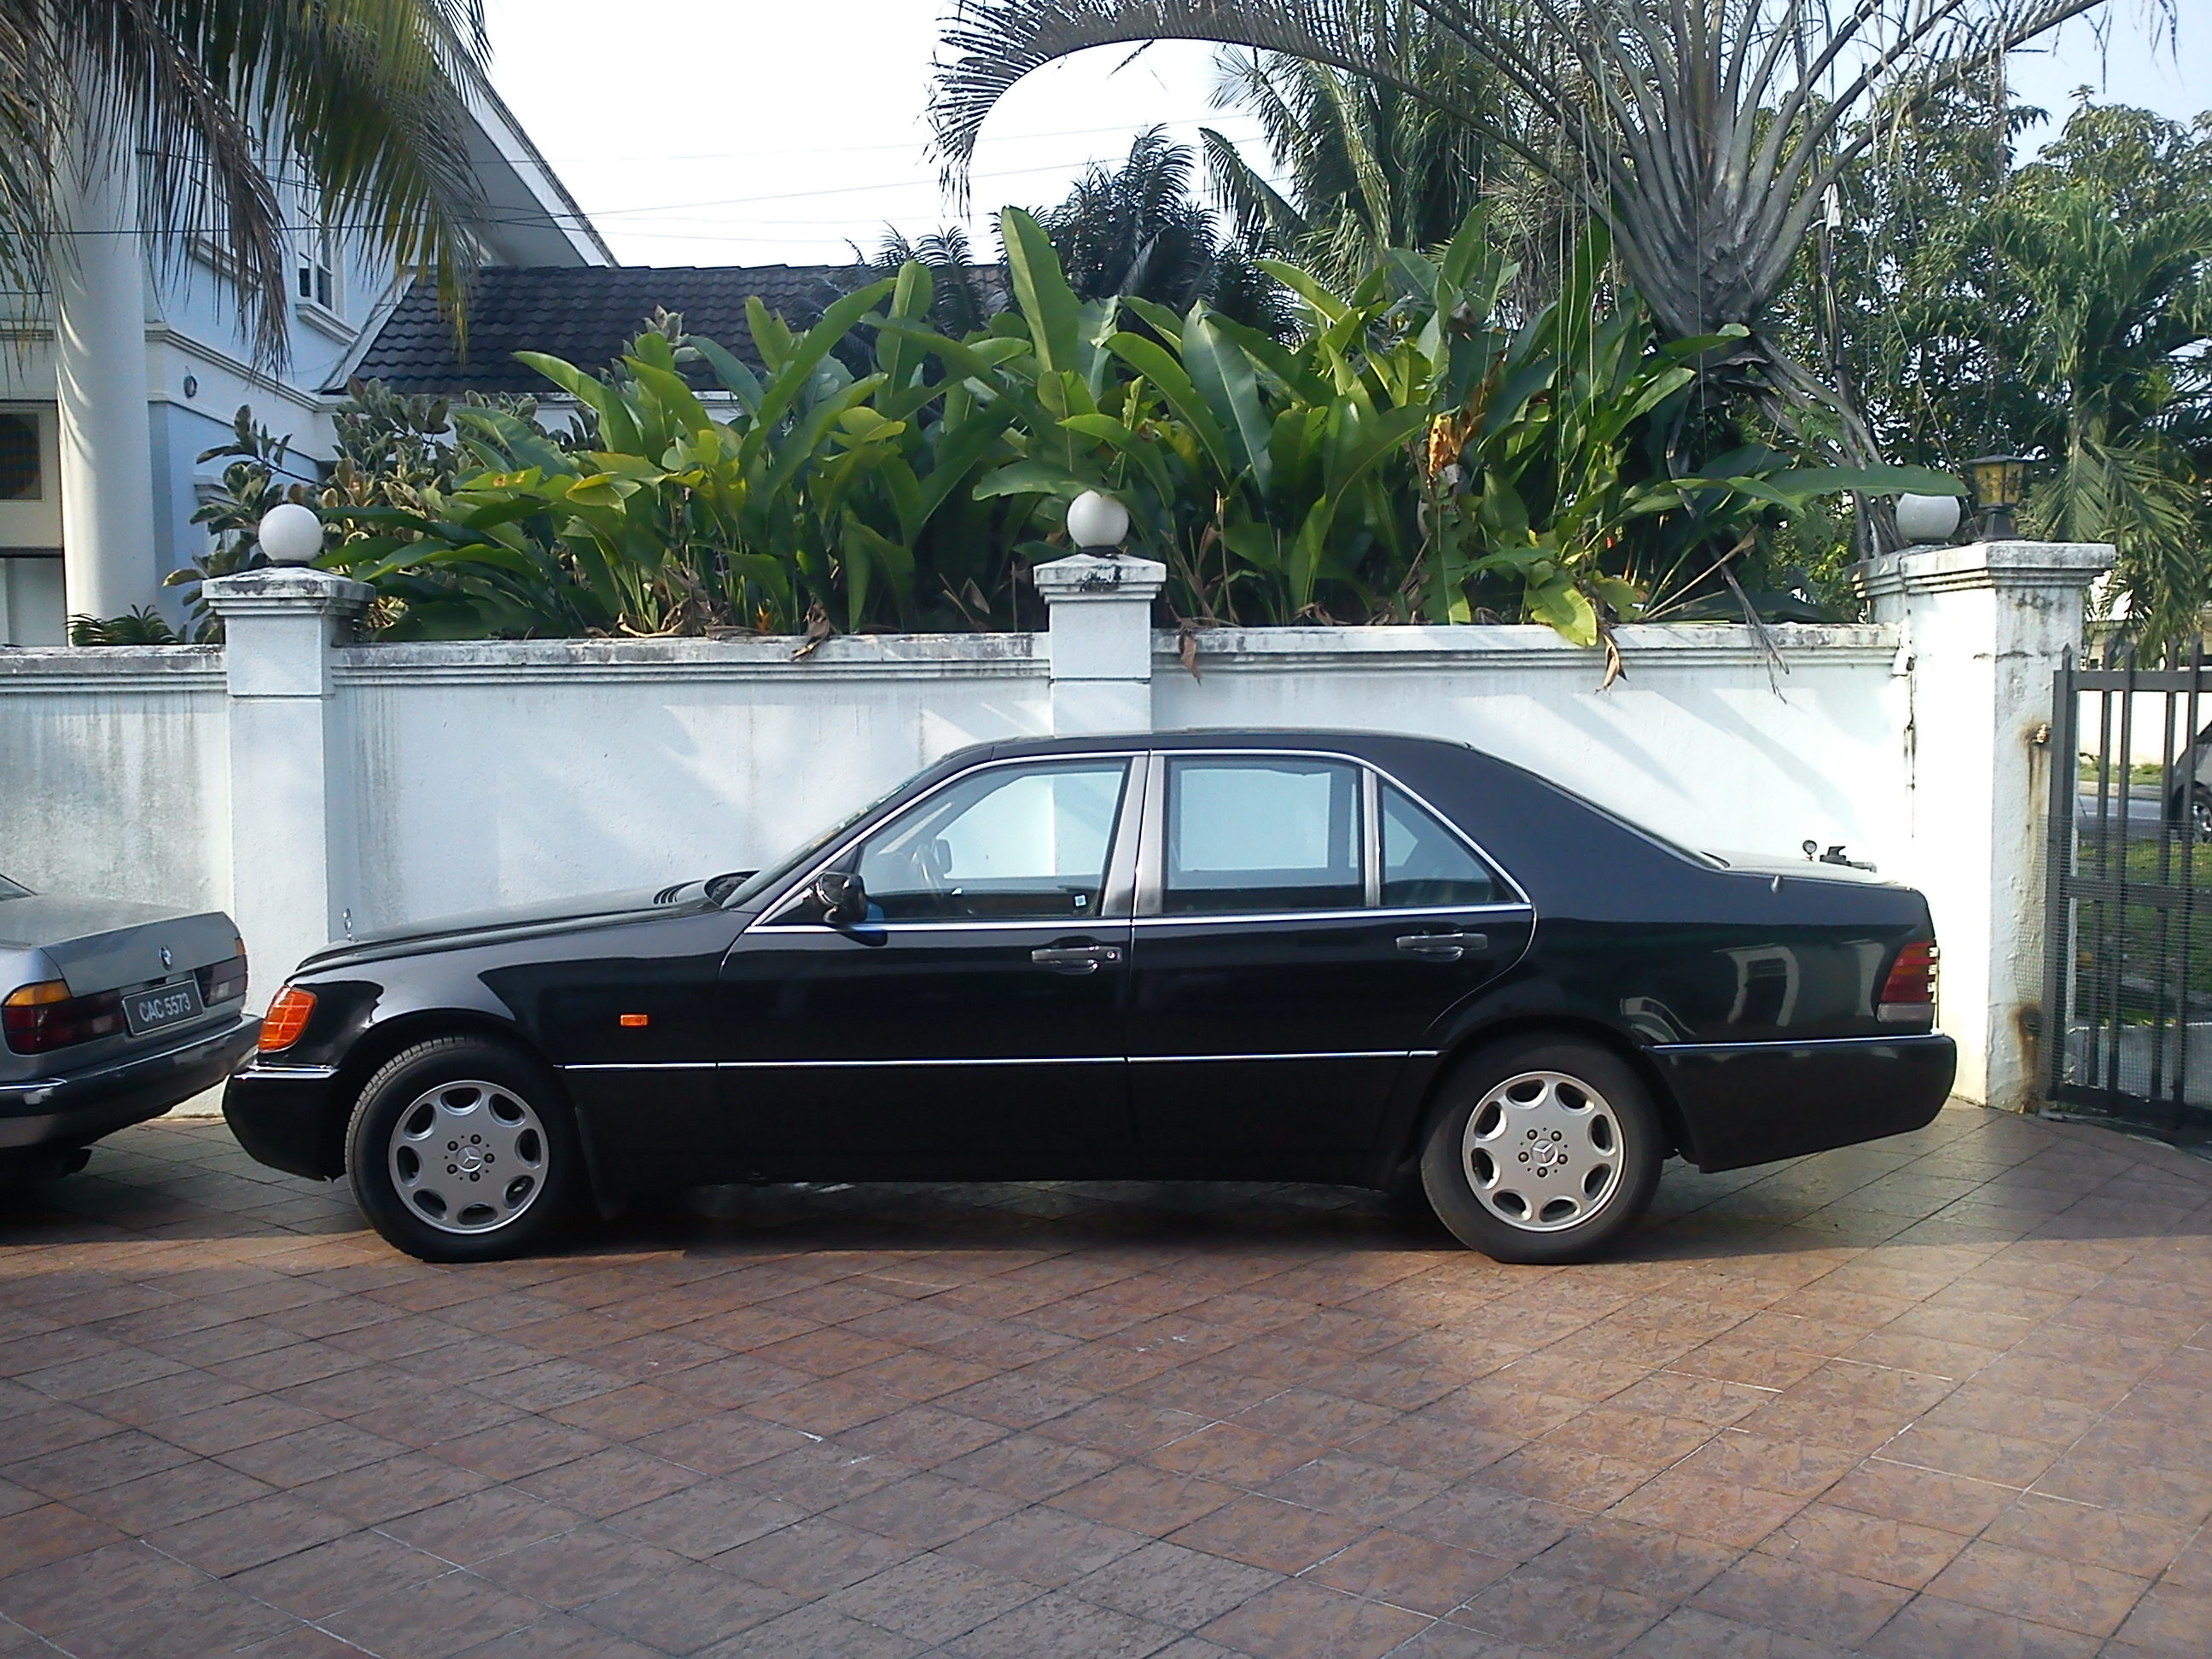 Benz s class w140 600sel or s600 m120 394 hp w140 information -  Mercedes Benz 600 Class 1992 8